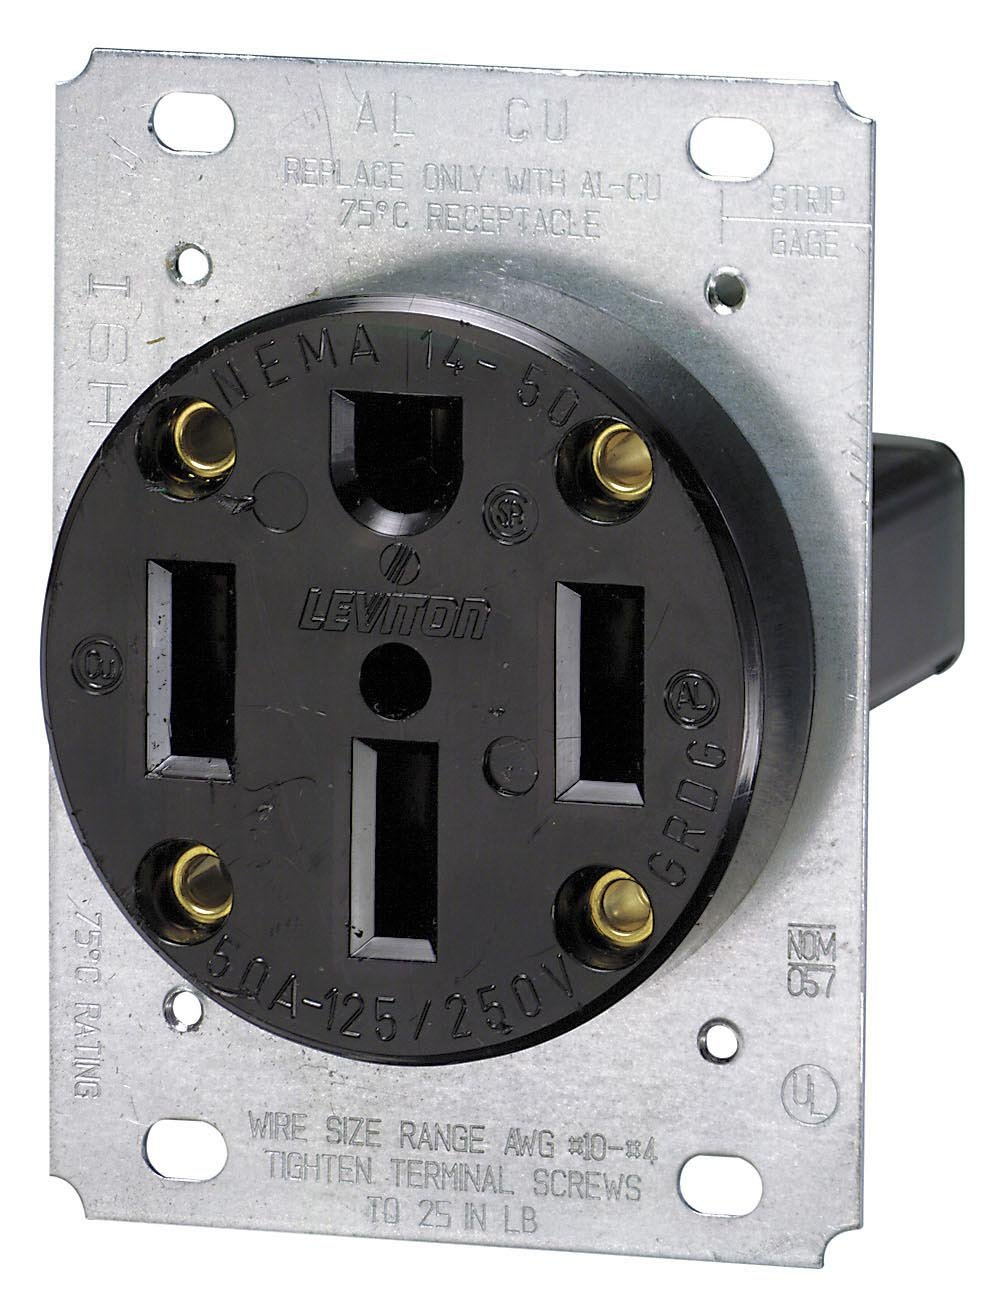 Leviton 279 50 Amp 125 250 Volt Nema 14 50r 3p 4w Dryer Outlet Wiring On 3 Wire Diagram Electric Flush Mounting Receptacle Straight Blade Industrial Grade Grounding Side Wired